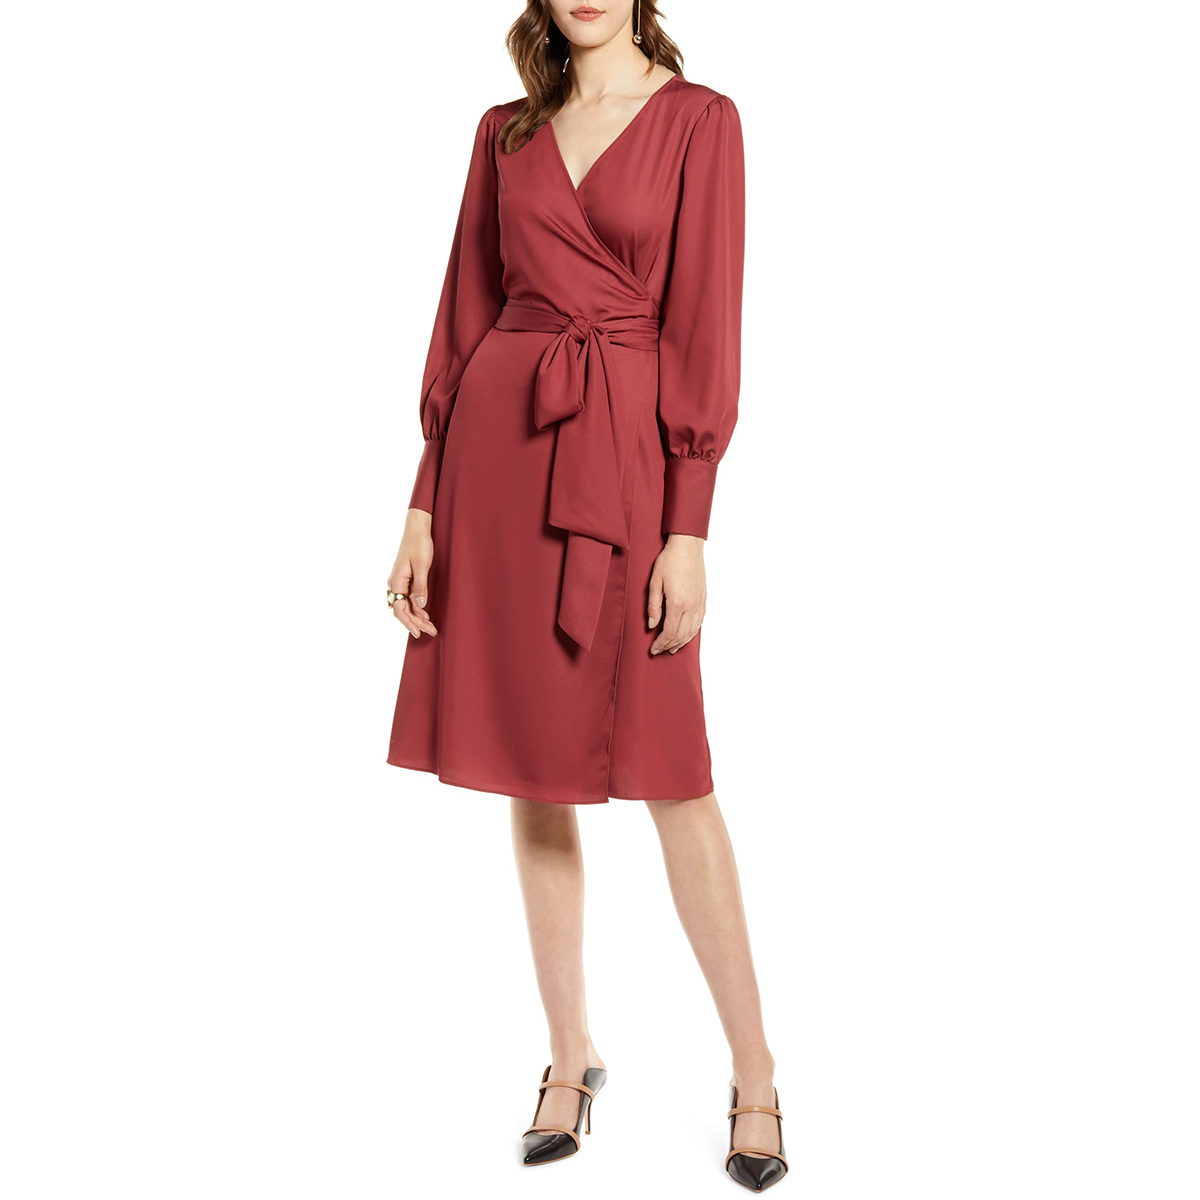 4b1941c22 Our Favorite Wrap Dress in the Nordstrom Sale Is So Flattering